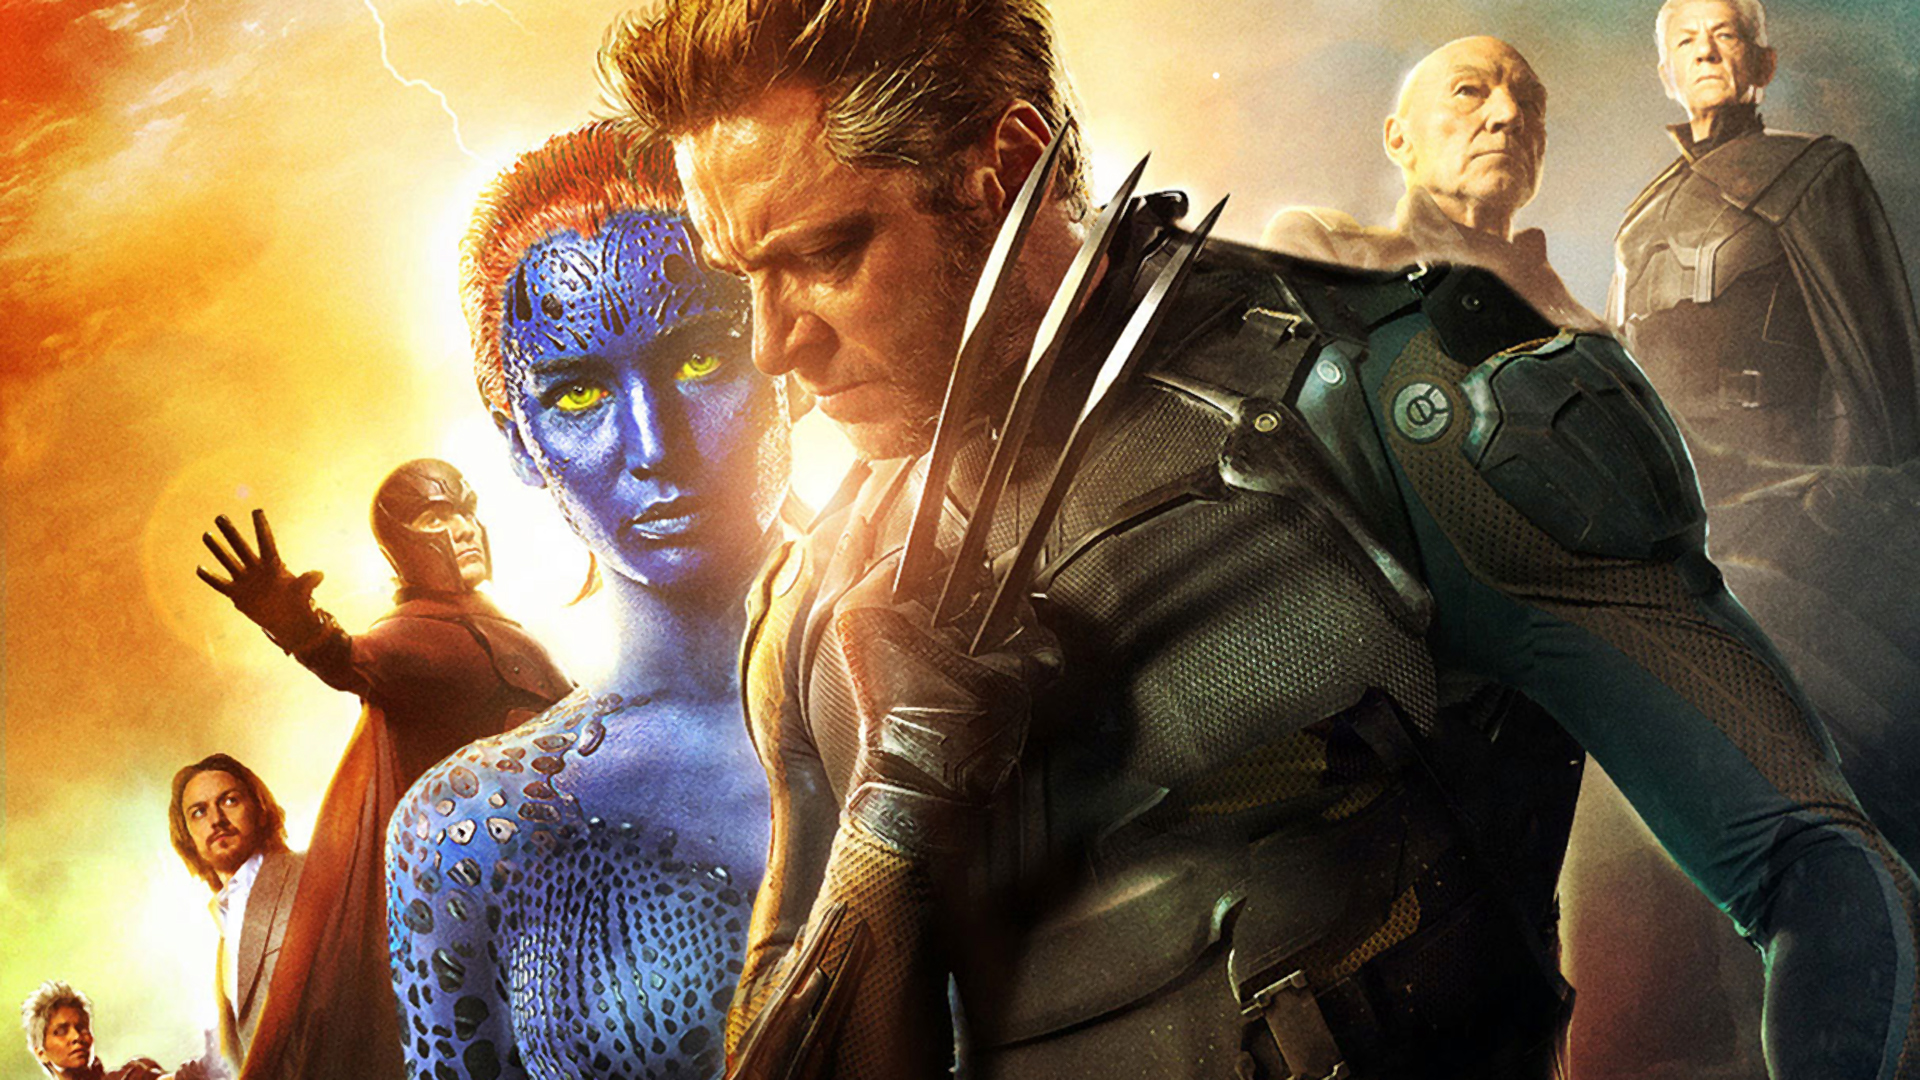 Free Download X Men Days Of Future Past Wallpaper Hi Res Ima 3418